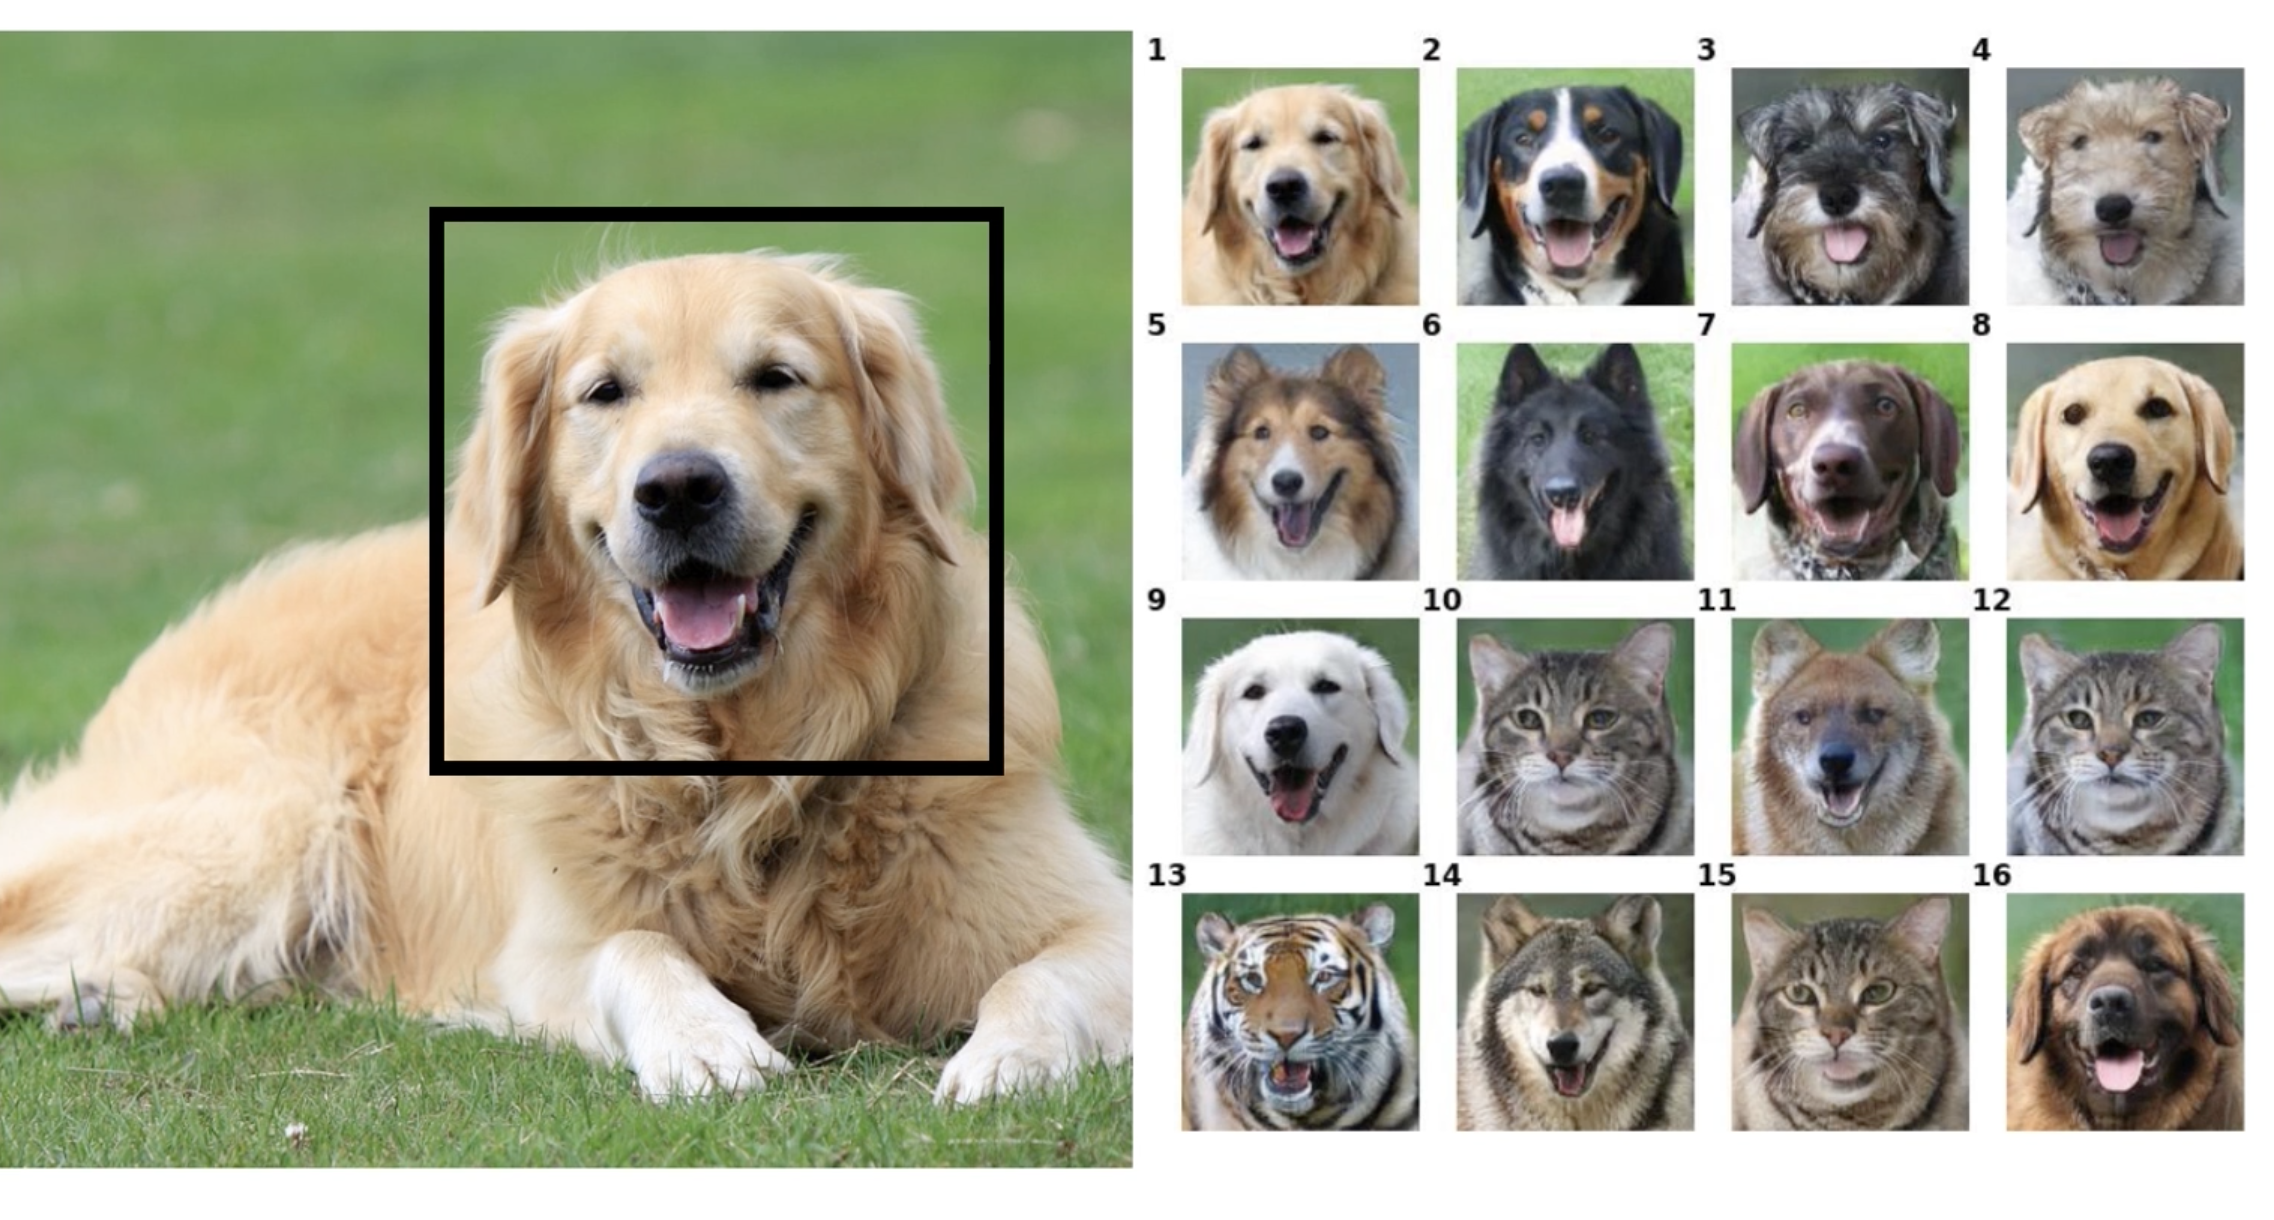 NVIDIA AI Enables Low-Data Face Swap for Pets - SyncedReview